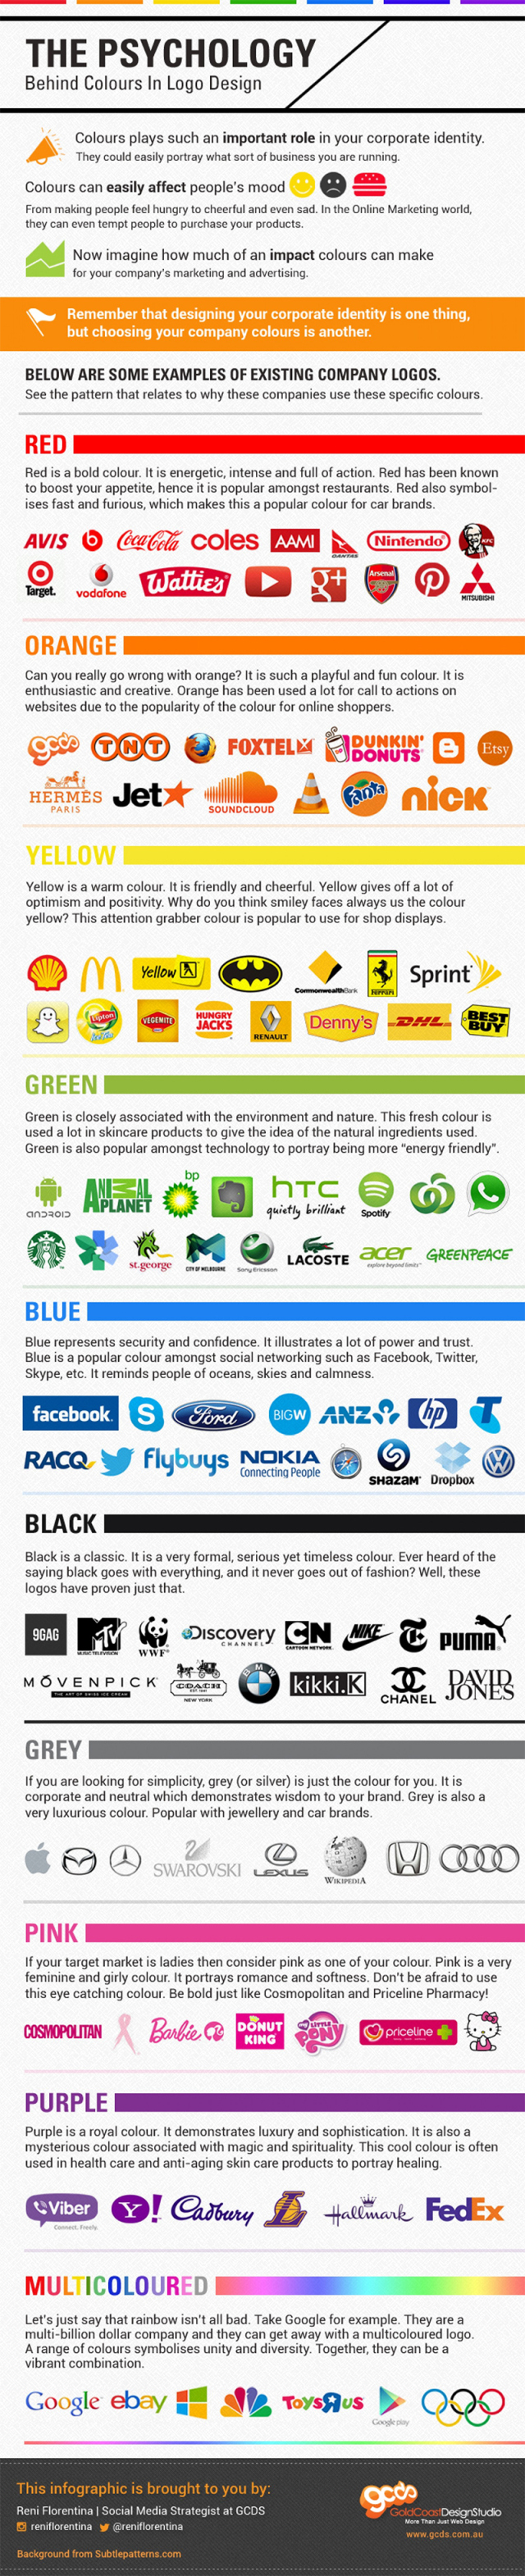 infographic-logo colours